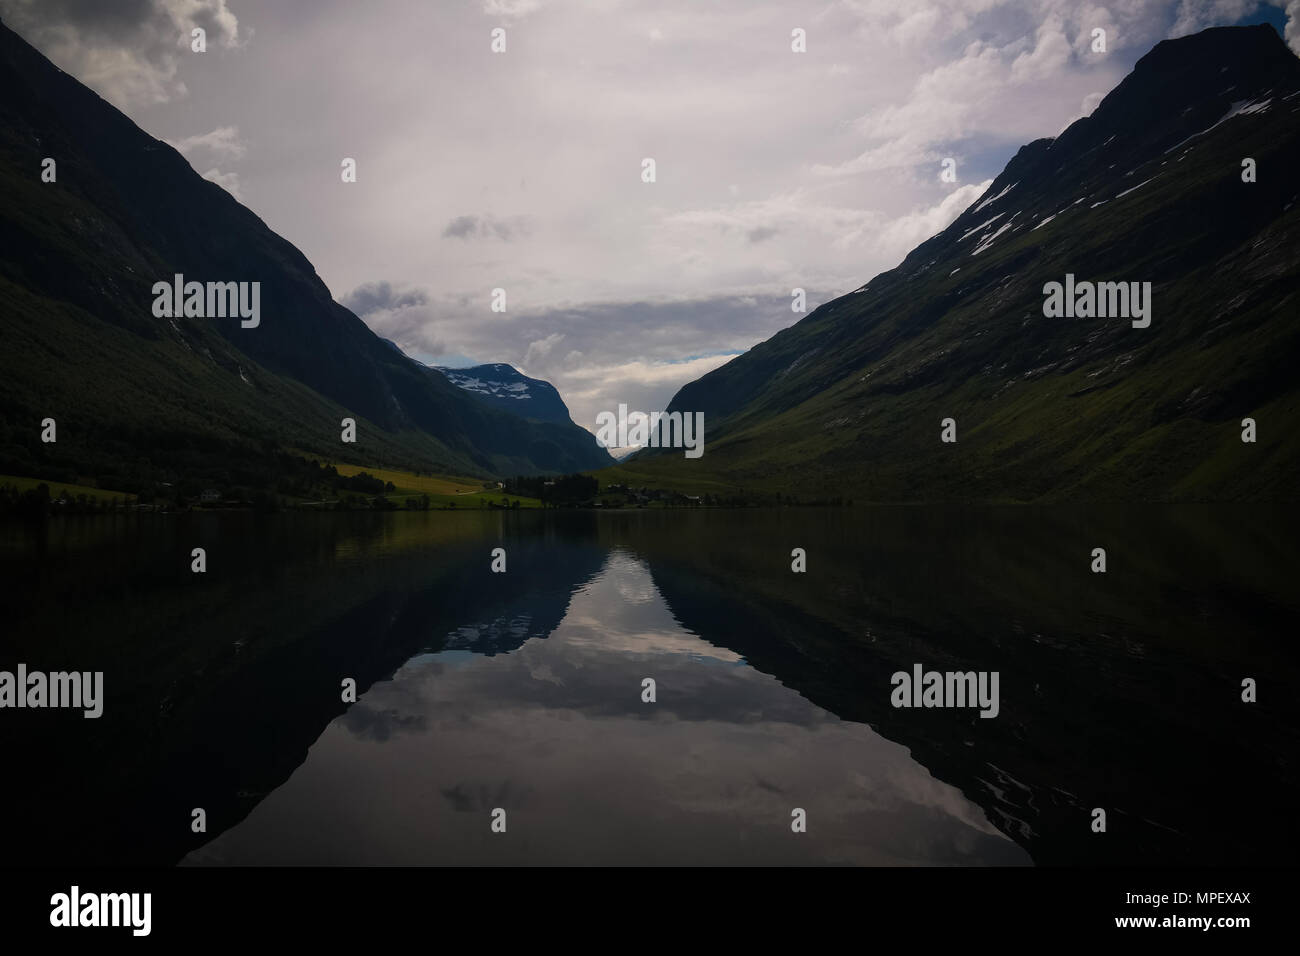 Panorama view to Eidsvatnet lake near Skogmo at Nord-Trondelag, Norway - Stock Image